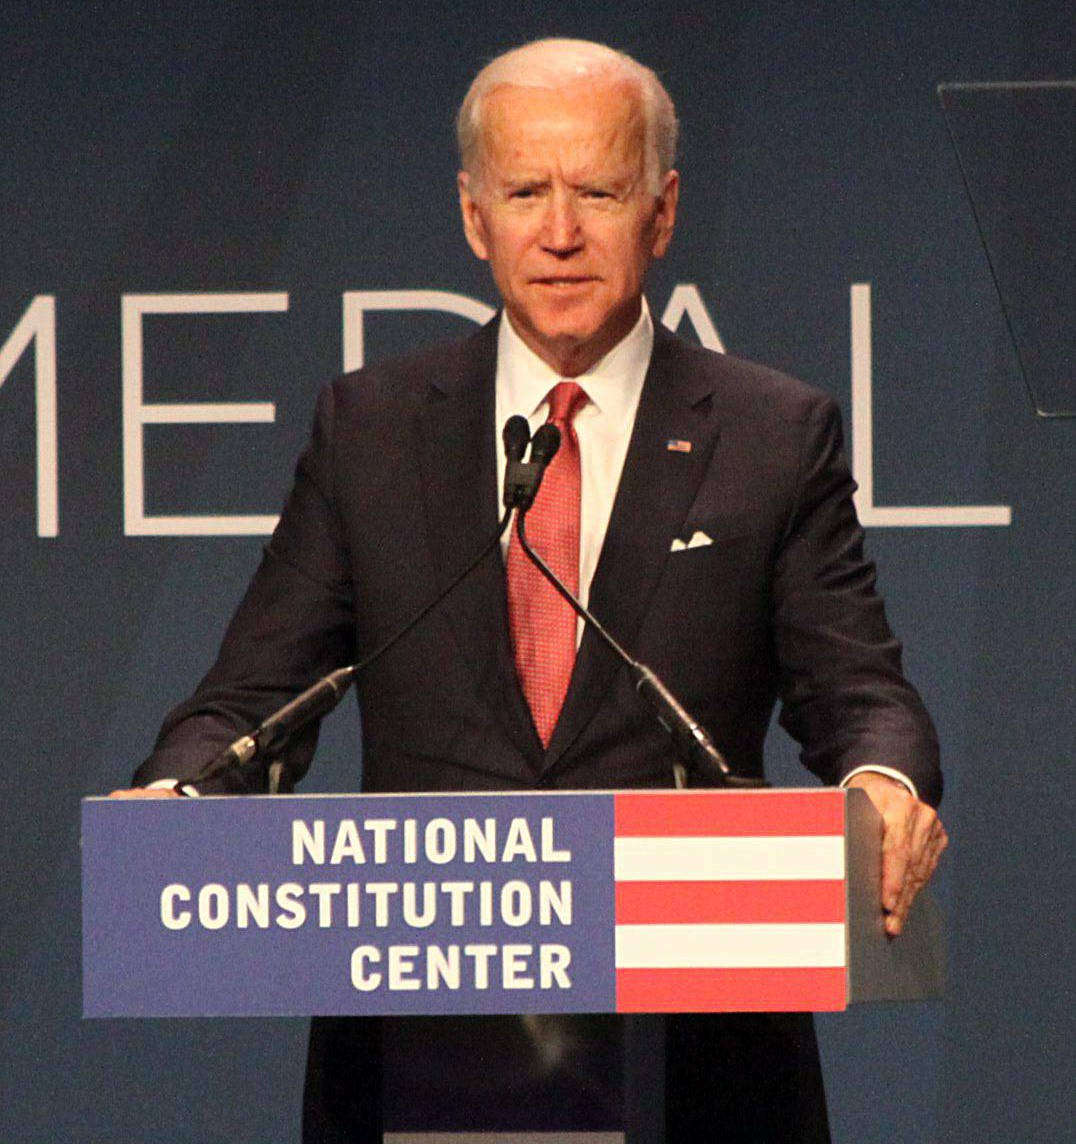 Joe Biden at the presentation of the 2018 Liberty Medal to George W Bush and Laure Bush at The National Constitution Center